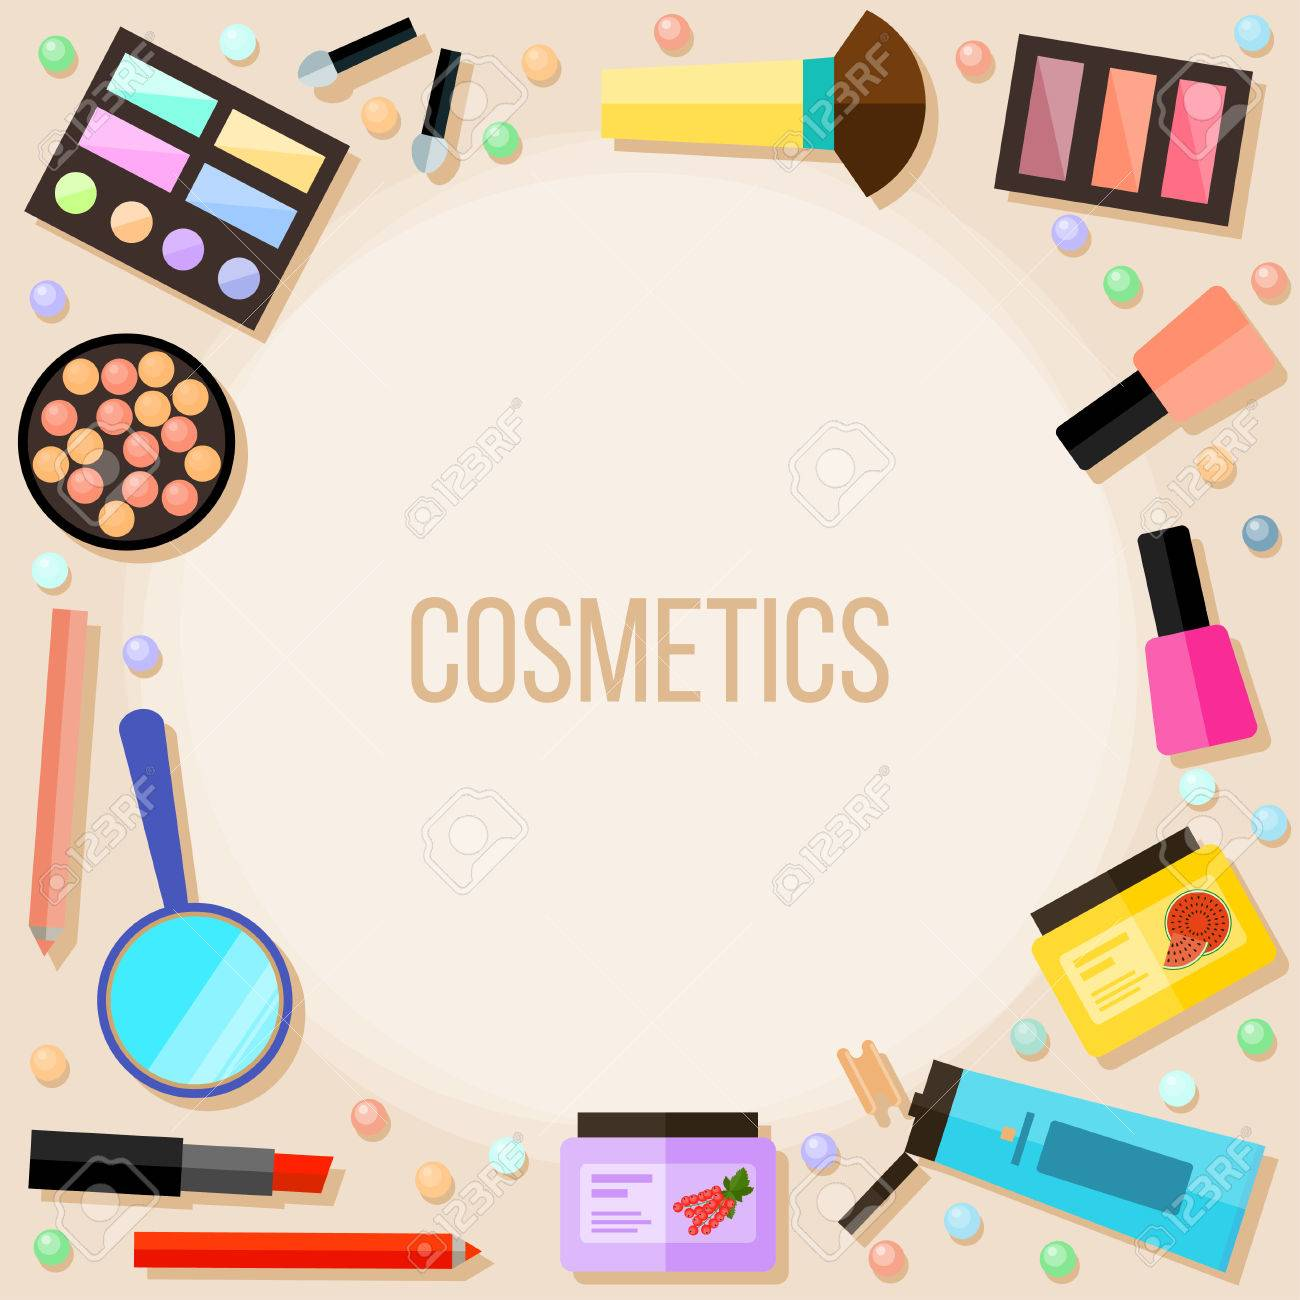 Bright Cartoon Cosmetic Product Isolated On Beige Cosmetic And Royalty Free Cliparts Vectors And Stock Illustration Image 65611194